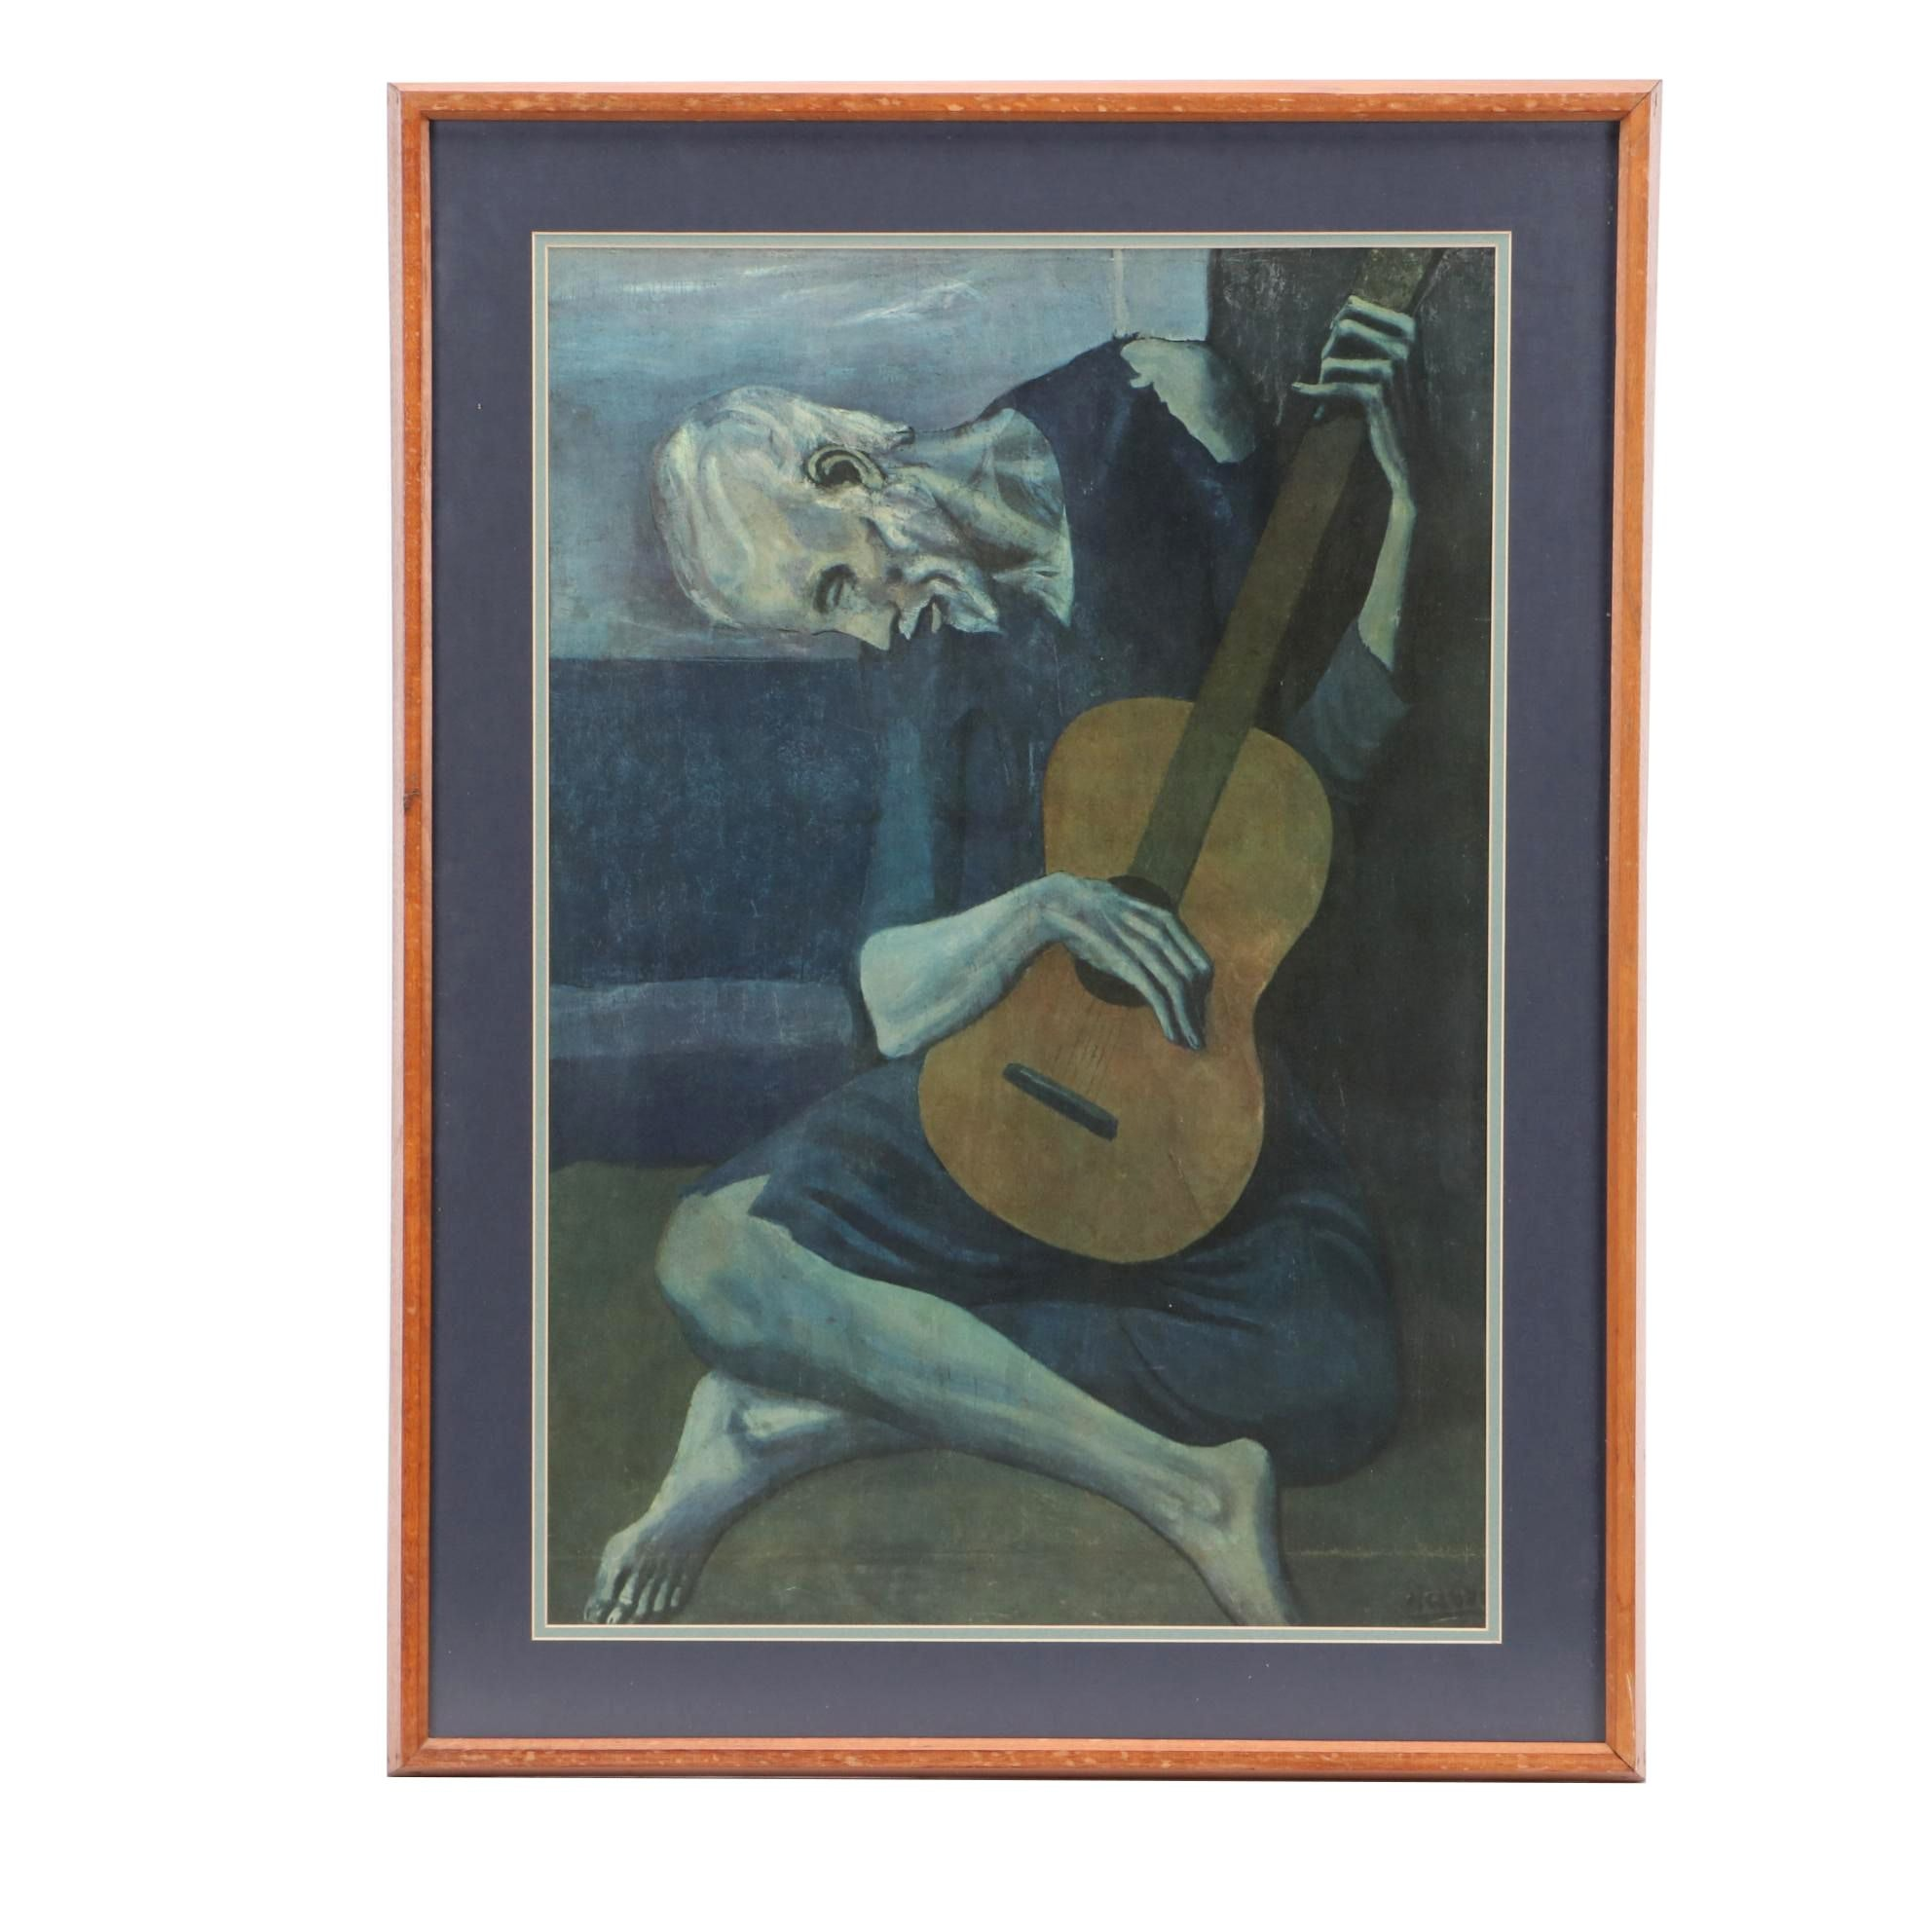 "Photomechanical Reproduction after Pablo Picasso ""The Old Guitarist"""